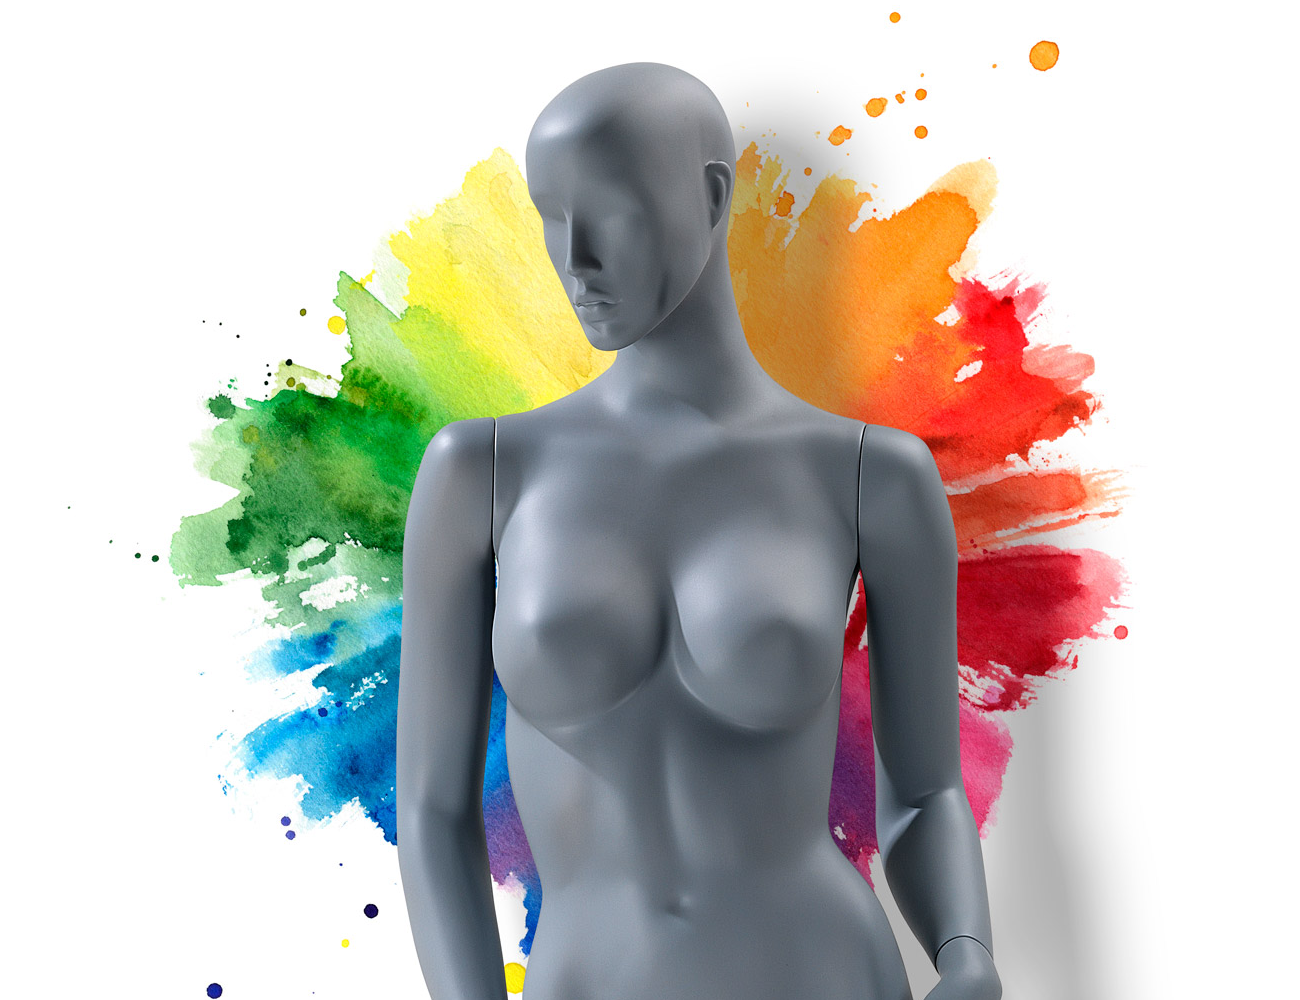 Revitalise your range of mannequins with a new finish in any RAL colour